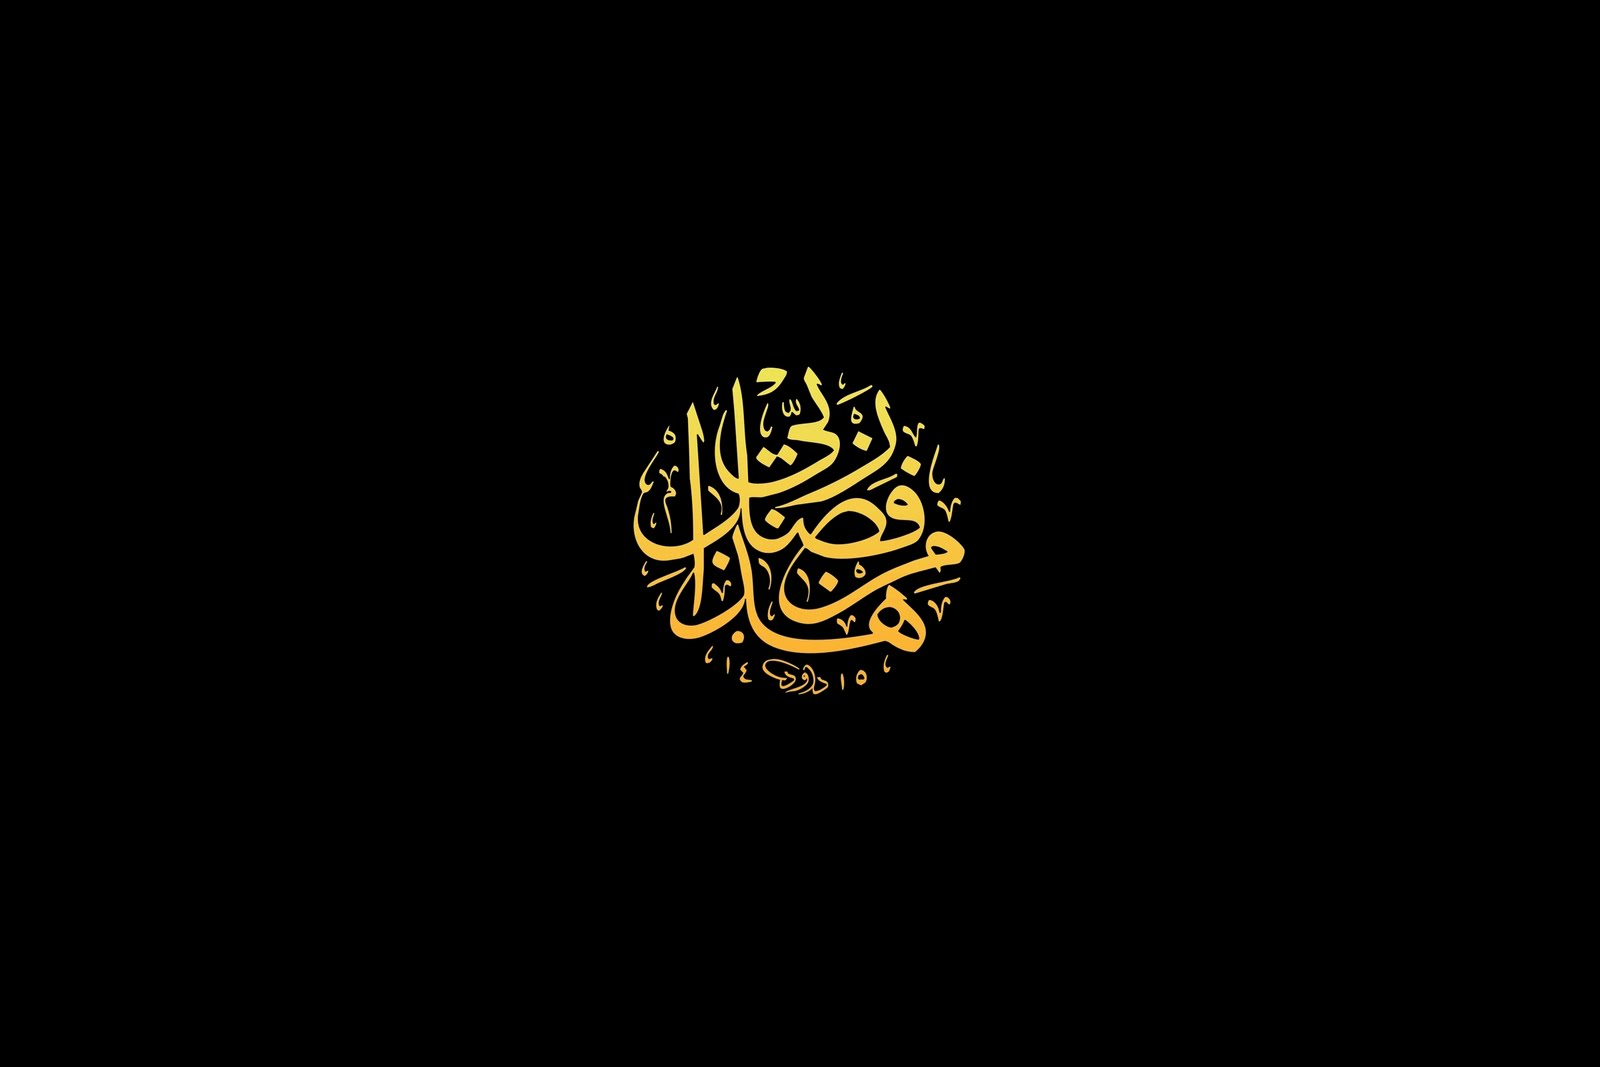 49 Islamic Wallpapers With Quotes On Wallpapersafari